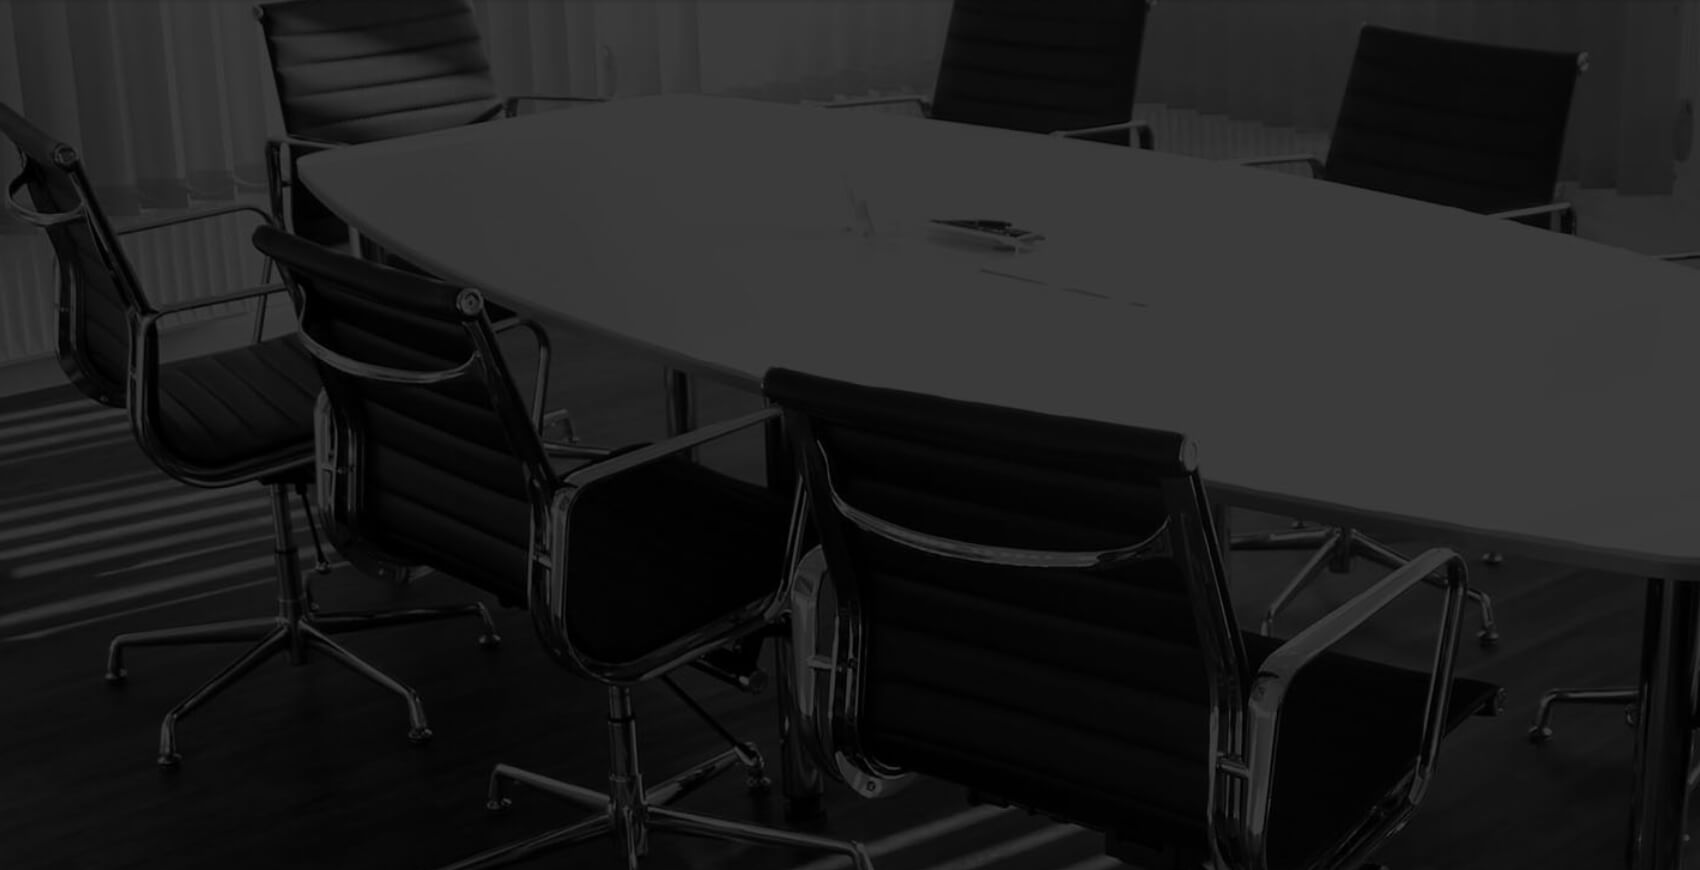 HR meeting room table and chairs